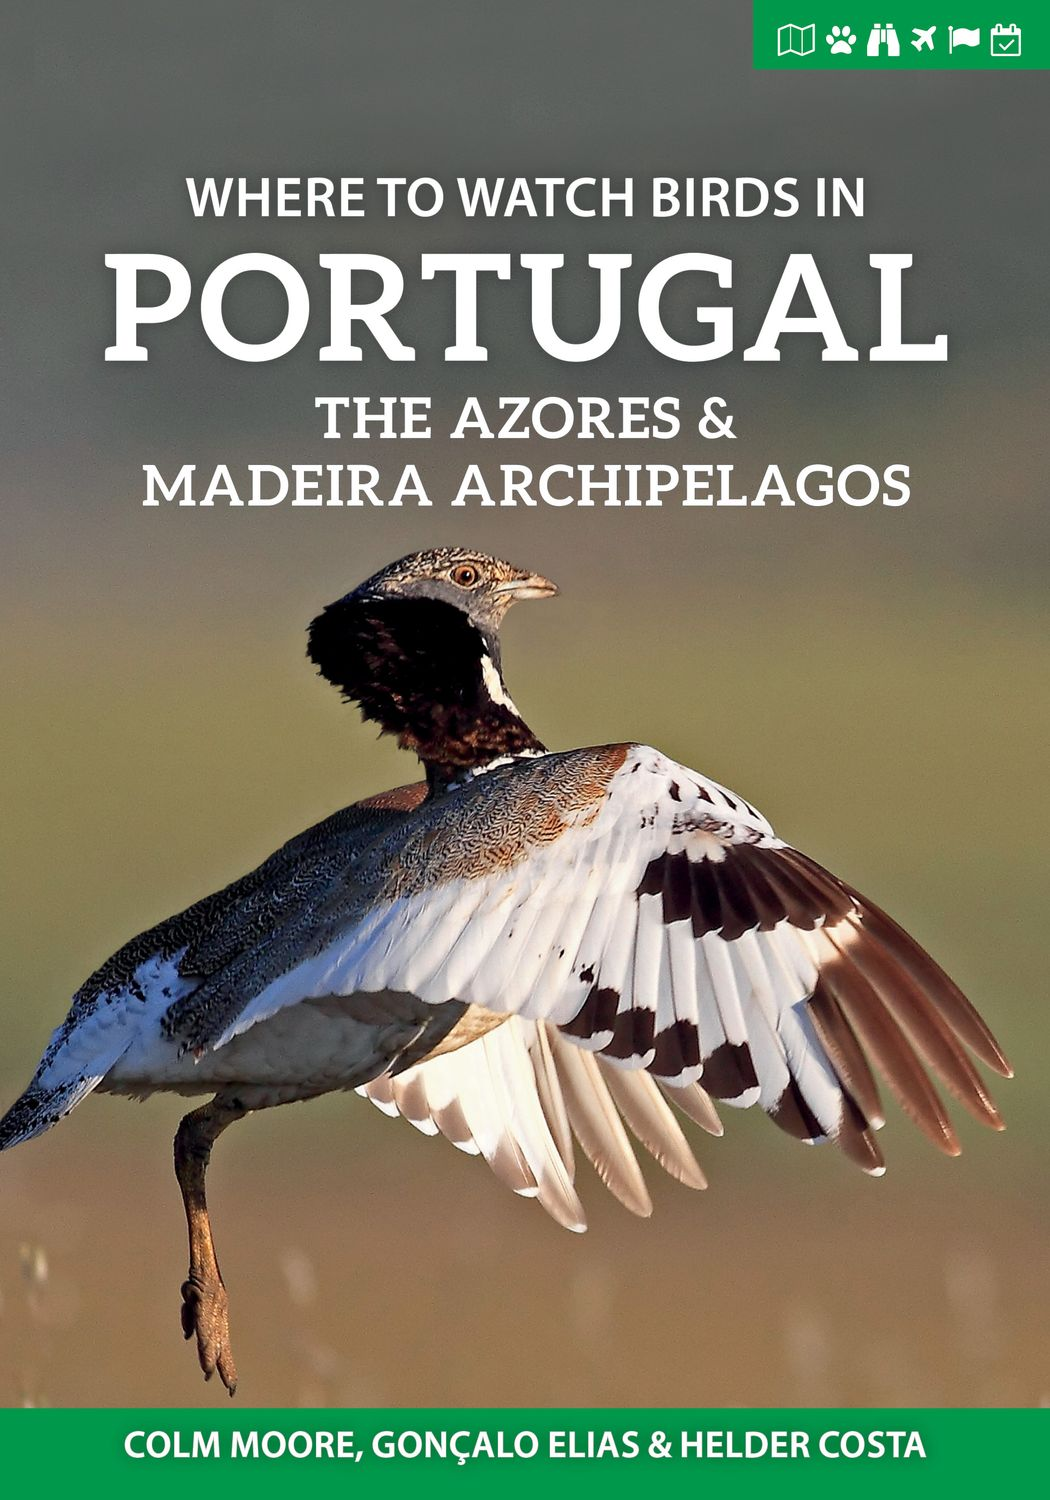 Where to Watch Birds in Portugal, the Azores & Madeira Archipelagos - Pelagic Publishing